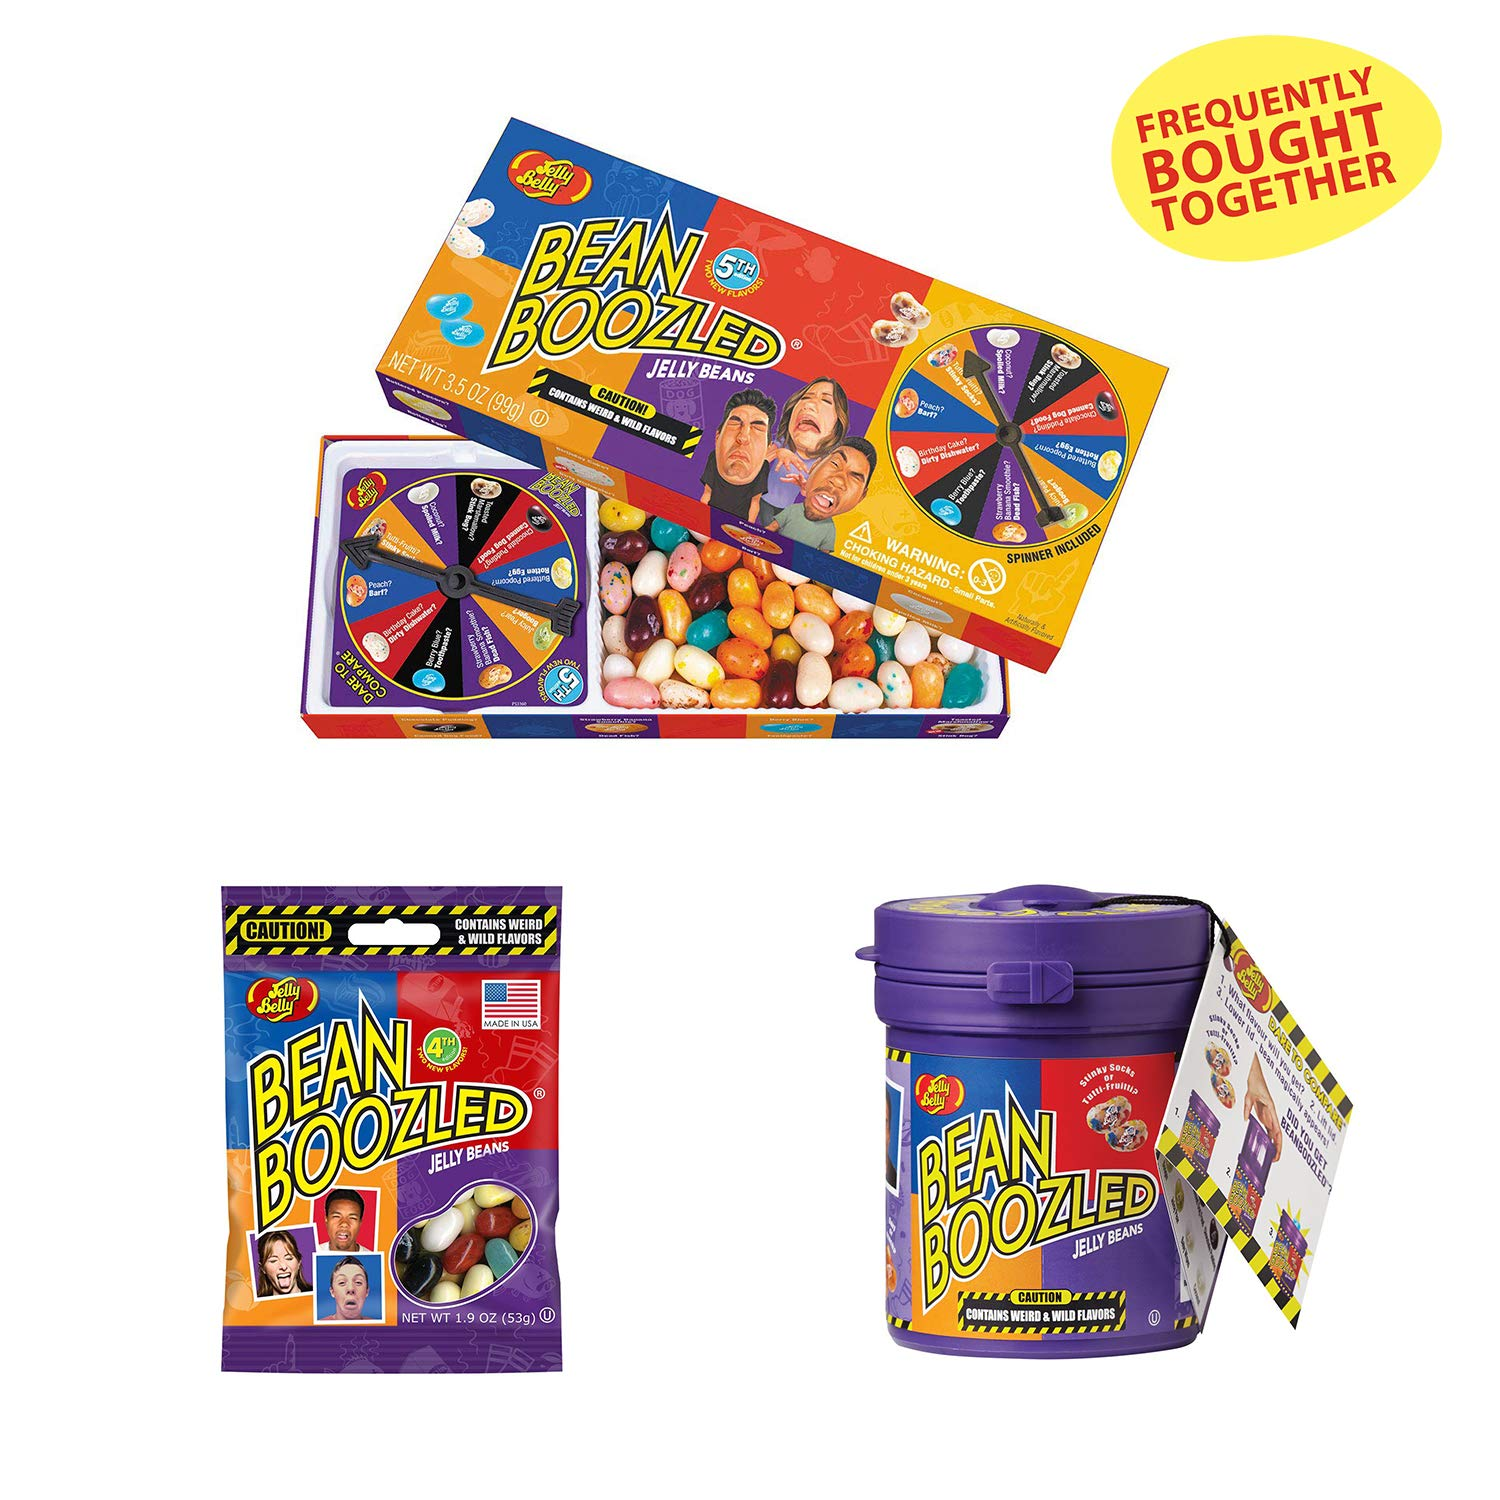 Jelly Belly BeanBoozled - Jelly Beans - Spinner Gift Box (5th Edition 3.5-oz) with Mystery Bean Dispenser (4th Edition Assorted Flavors 3.5-oz) and Boozled Bag (1.9 oz) by Jelly Belly